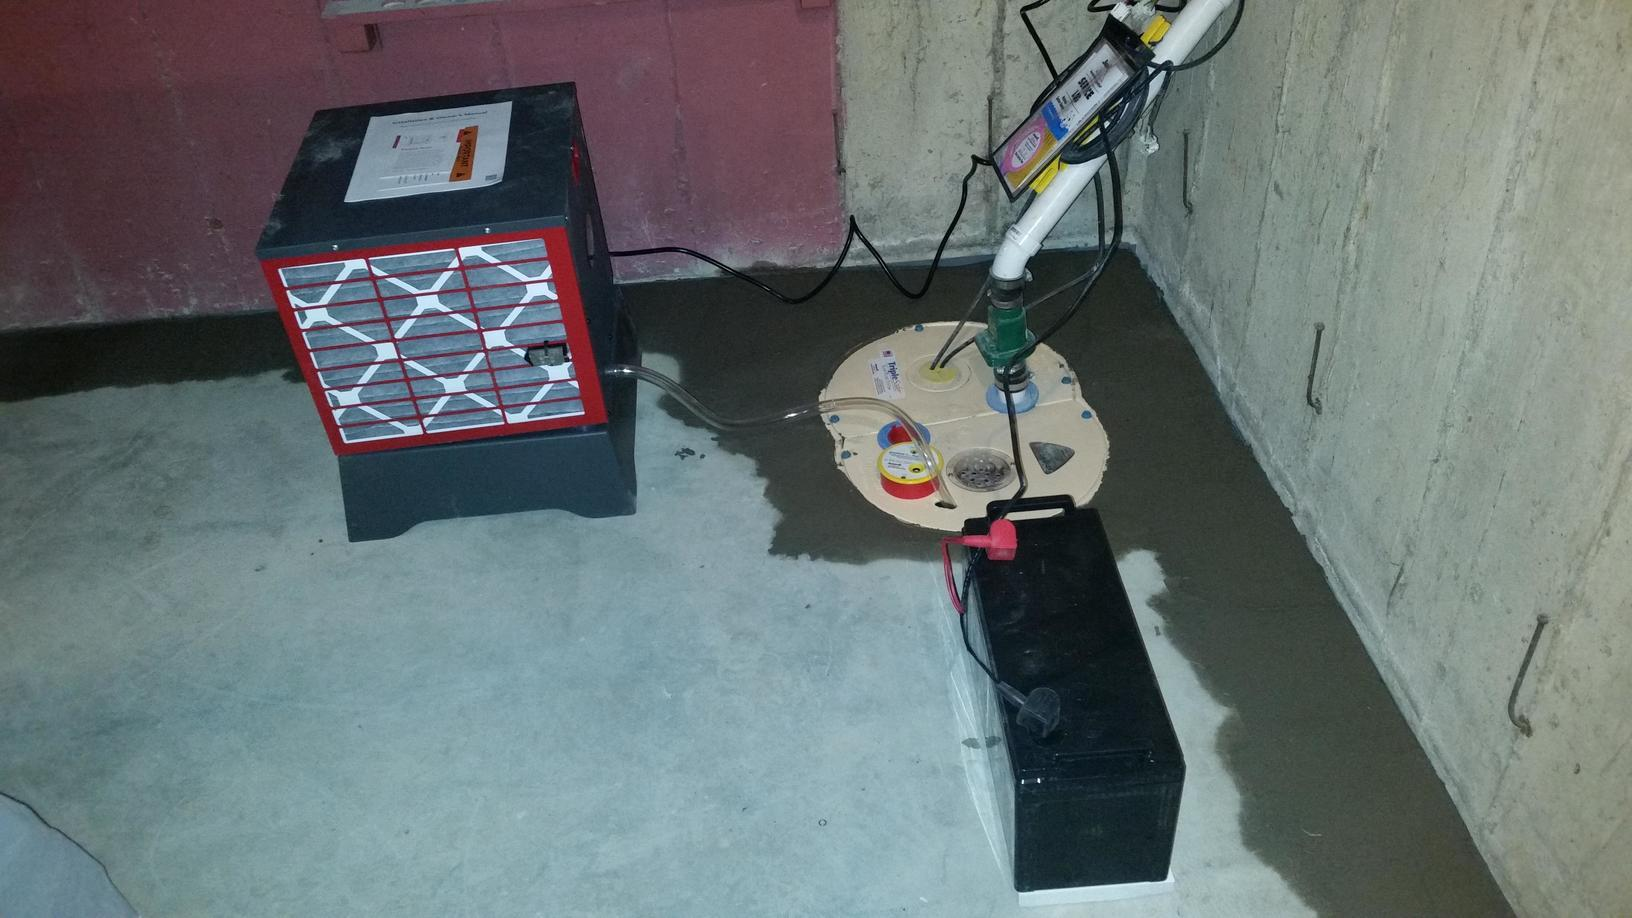 Pictured is the new sump pump with the battery back up along with a SaniDry dehumidifier.